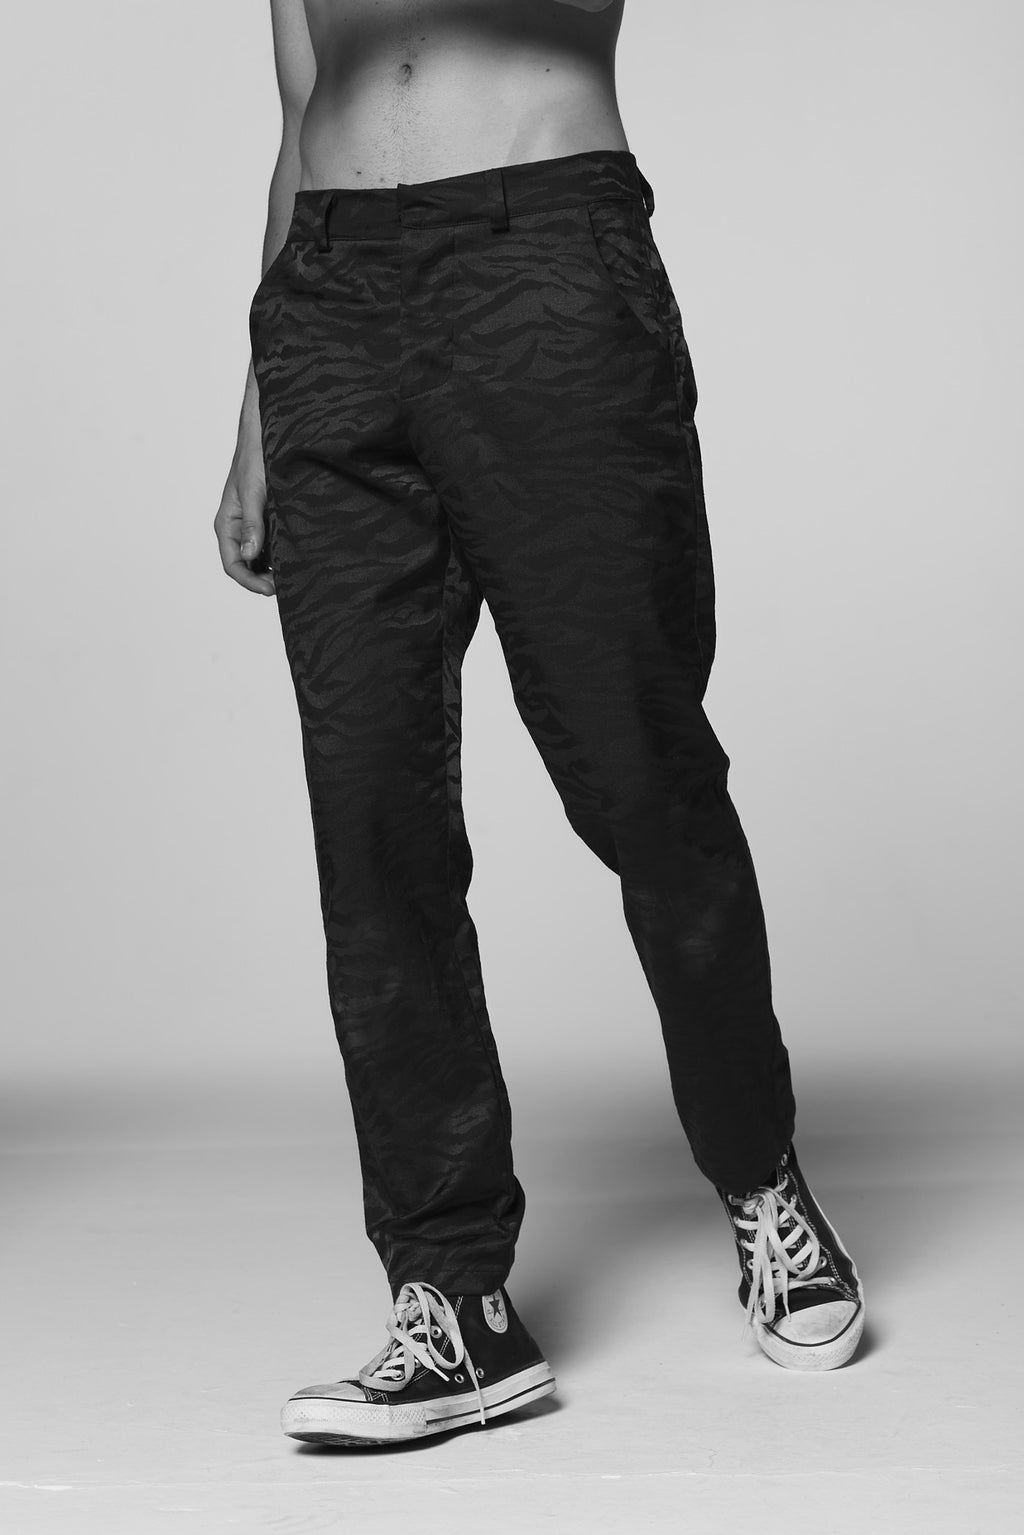 Black on Black Tiger Striped Chinos